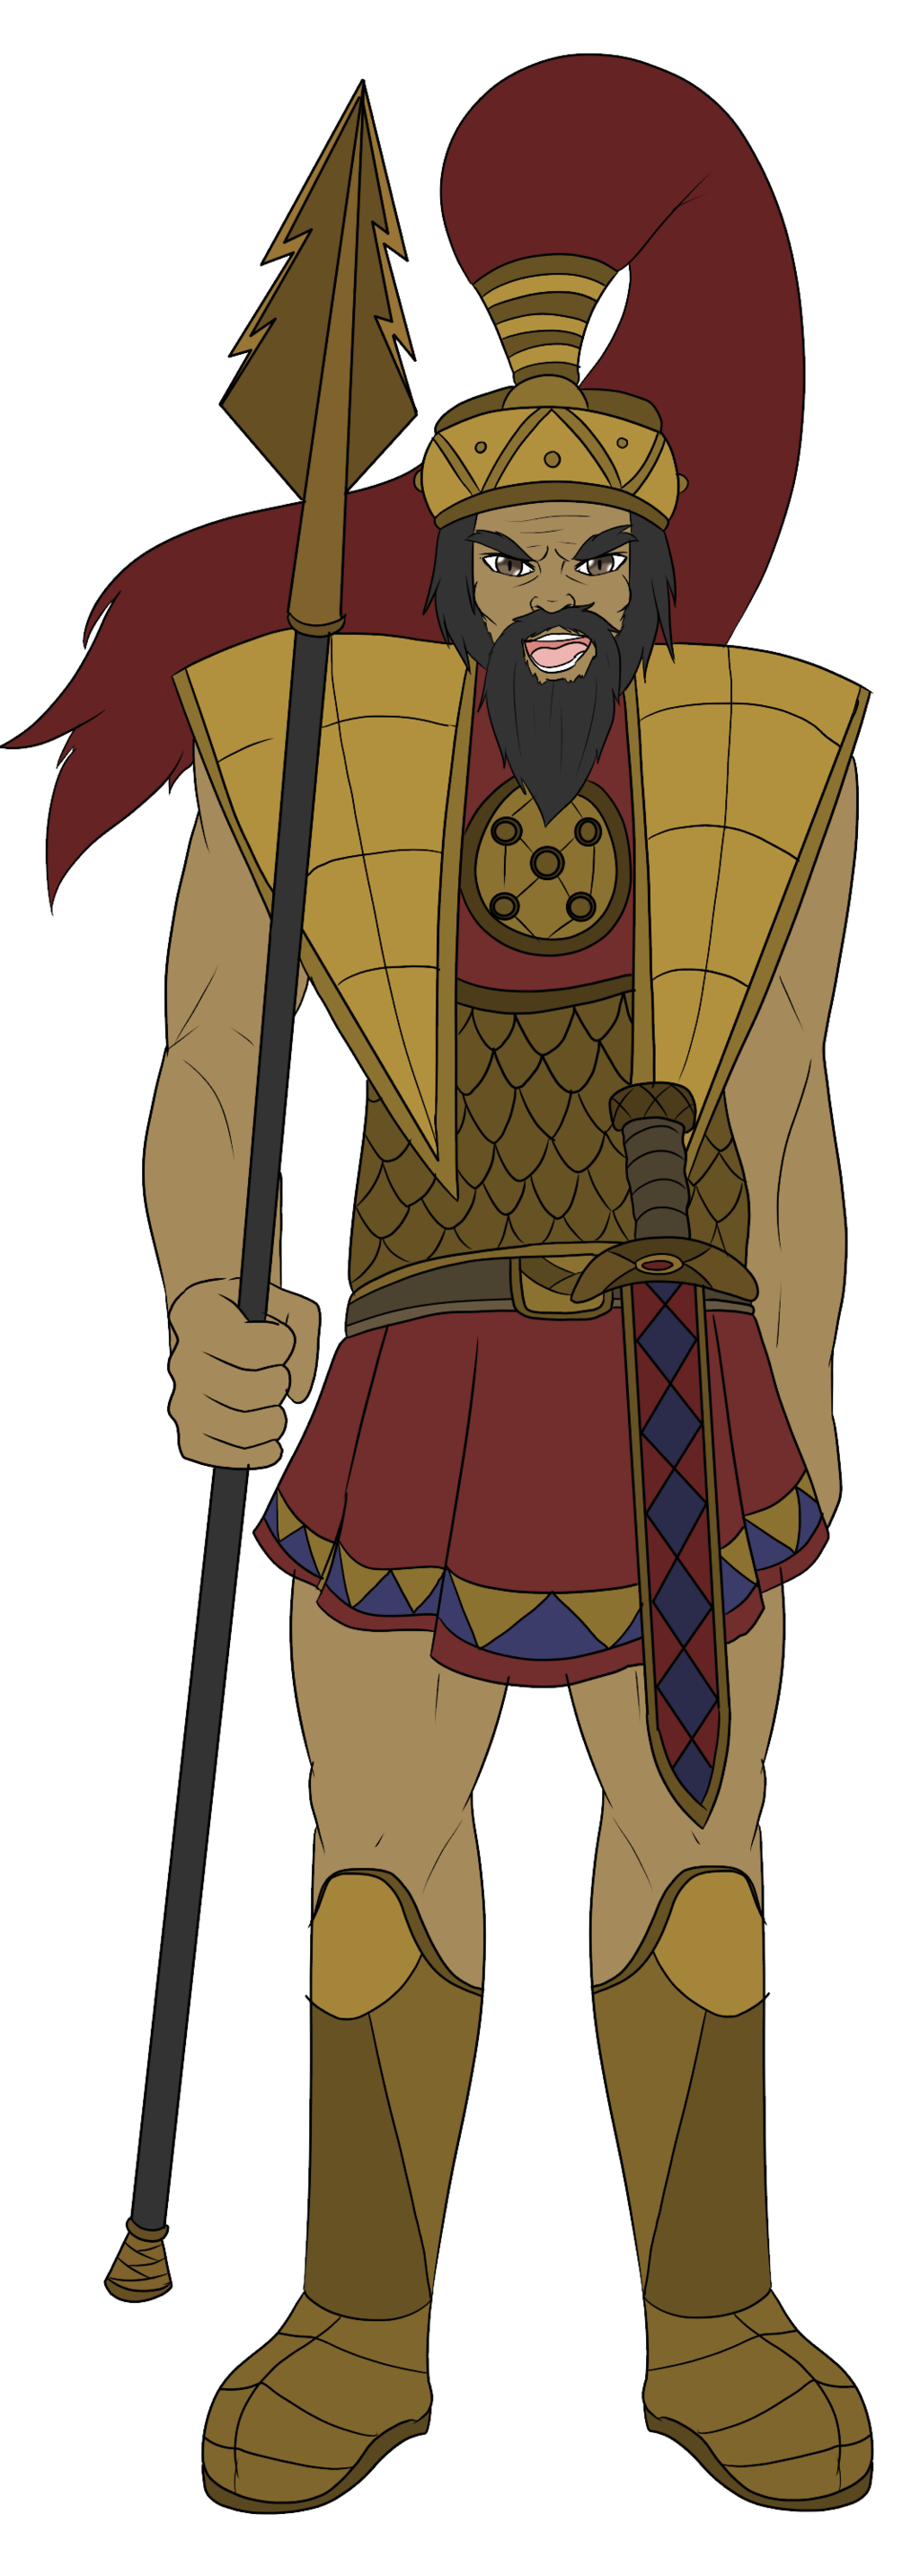 Lancer goliath by moerin. Proud clipart boastful